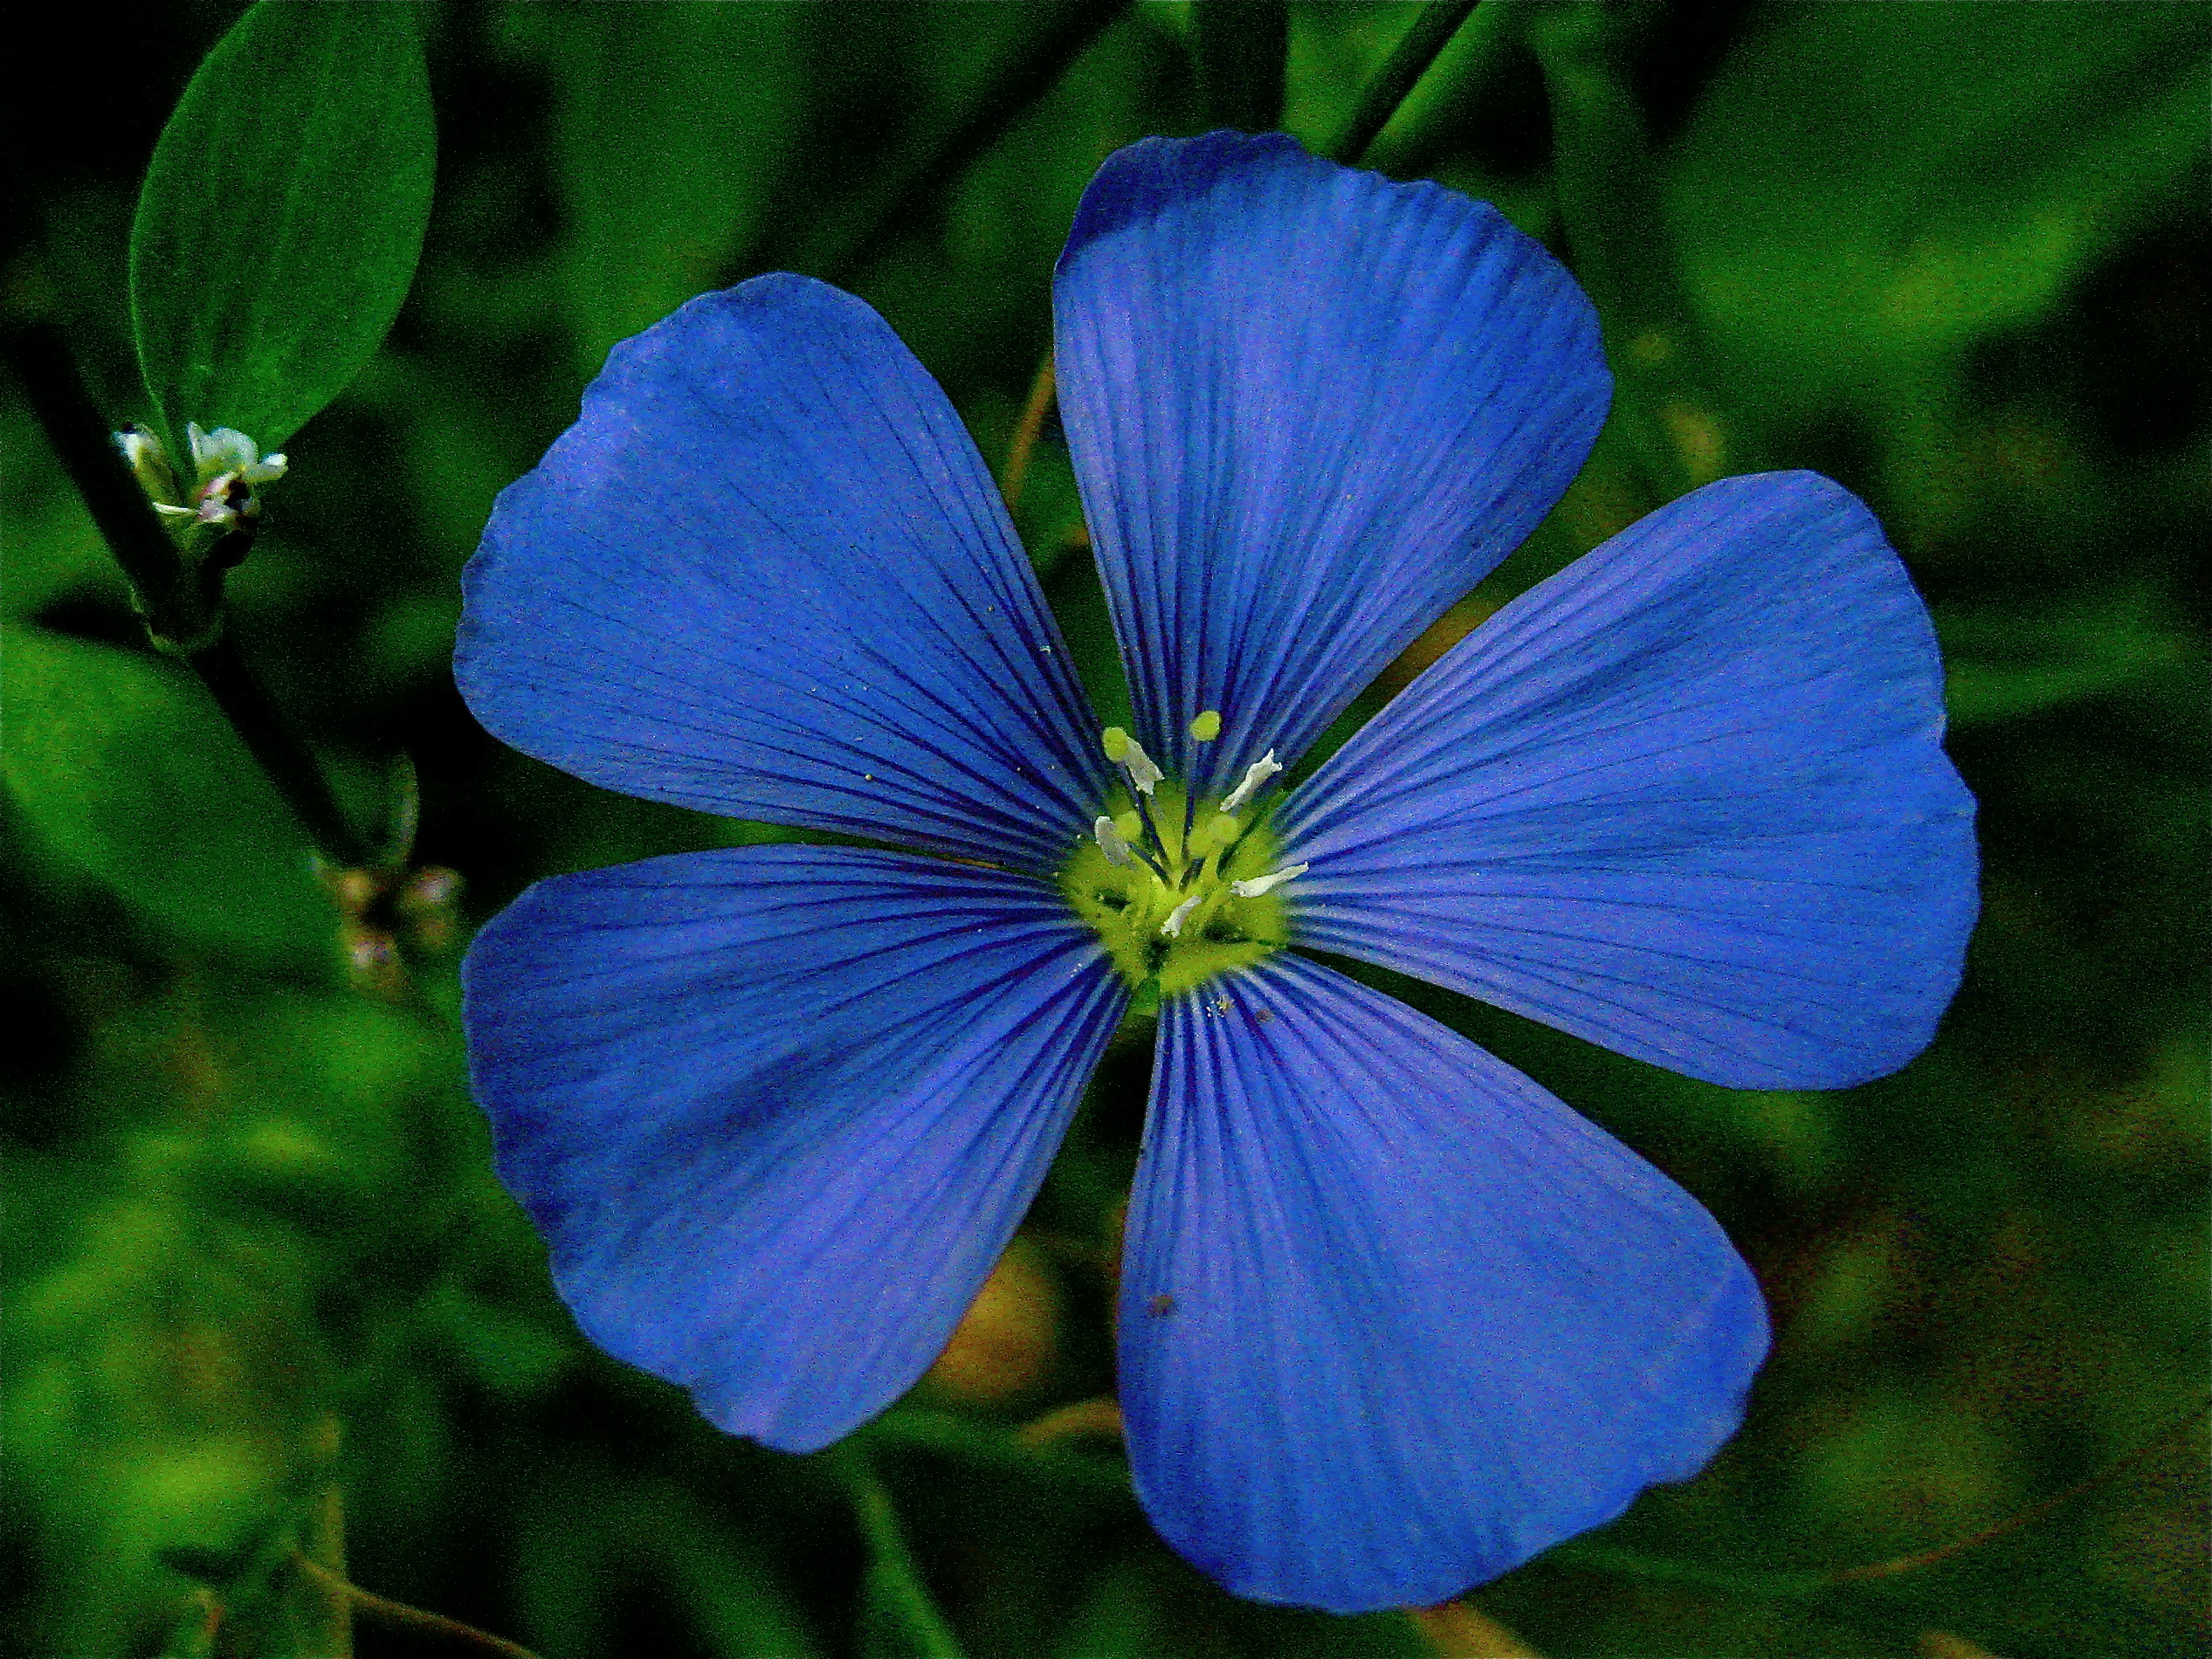 Fileperennial flax or linum perenneg wikimedia commons fileperennial flax or linum perenneg izmirmasajfo Images